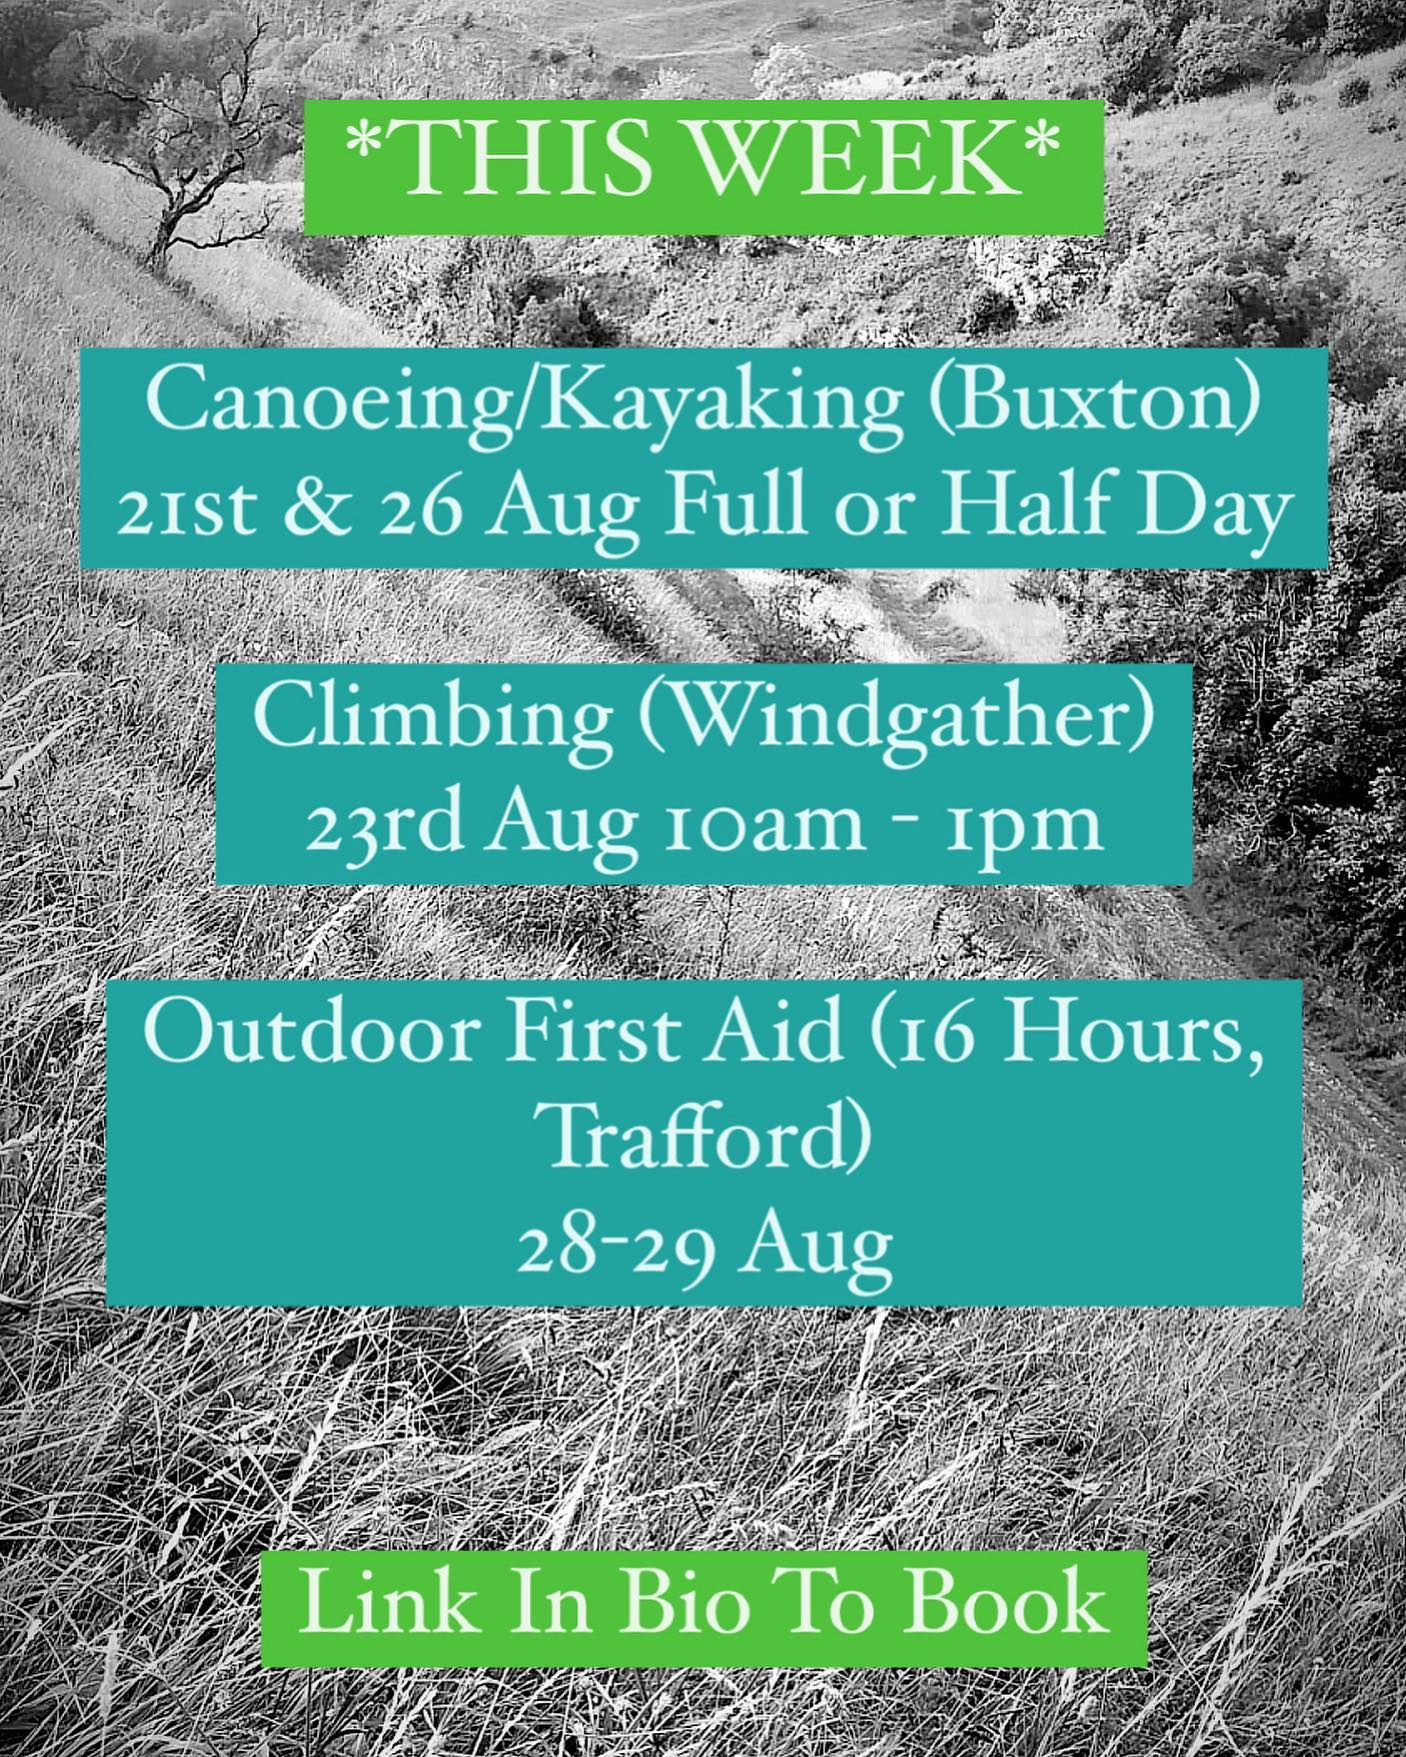 Join our friendly, qualified instructors for these sessions, just for fun or to learn some new skills, we hope to see you here!  More info and booking at www.wilderness-development.com, link in our bio 🧗♀️⛰🧗♀️ . . . #wildernessdevelopment #smallbusiness #rockclimbing #climbing #scrambling #canoeing #kayaking #outdoorfirstaid #abseiling #trysomethingnew #peakdistrict #peakdistrictnationalpark #peakdistrictclimbing #mountainsfellsandhikes #roamtheuk #outdoorpursuits #outdooradventures #outdooractivities #nationalparksuk #booknow